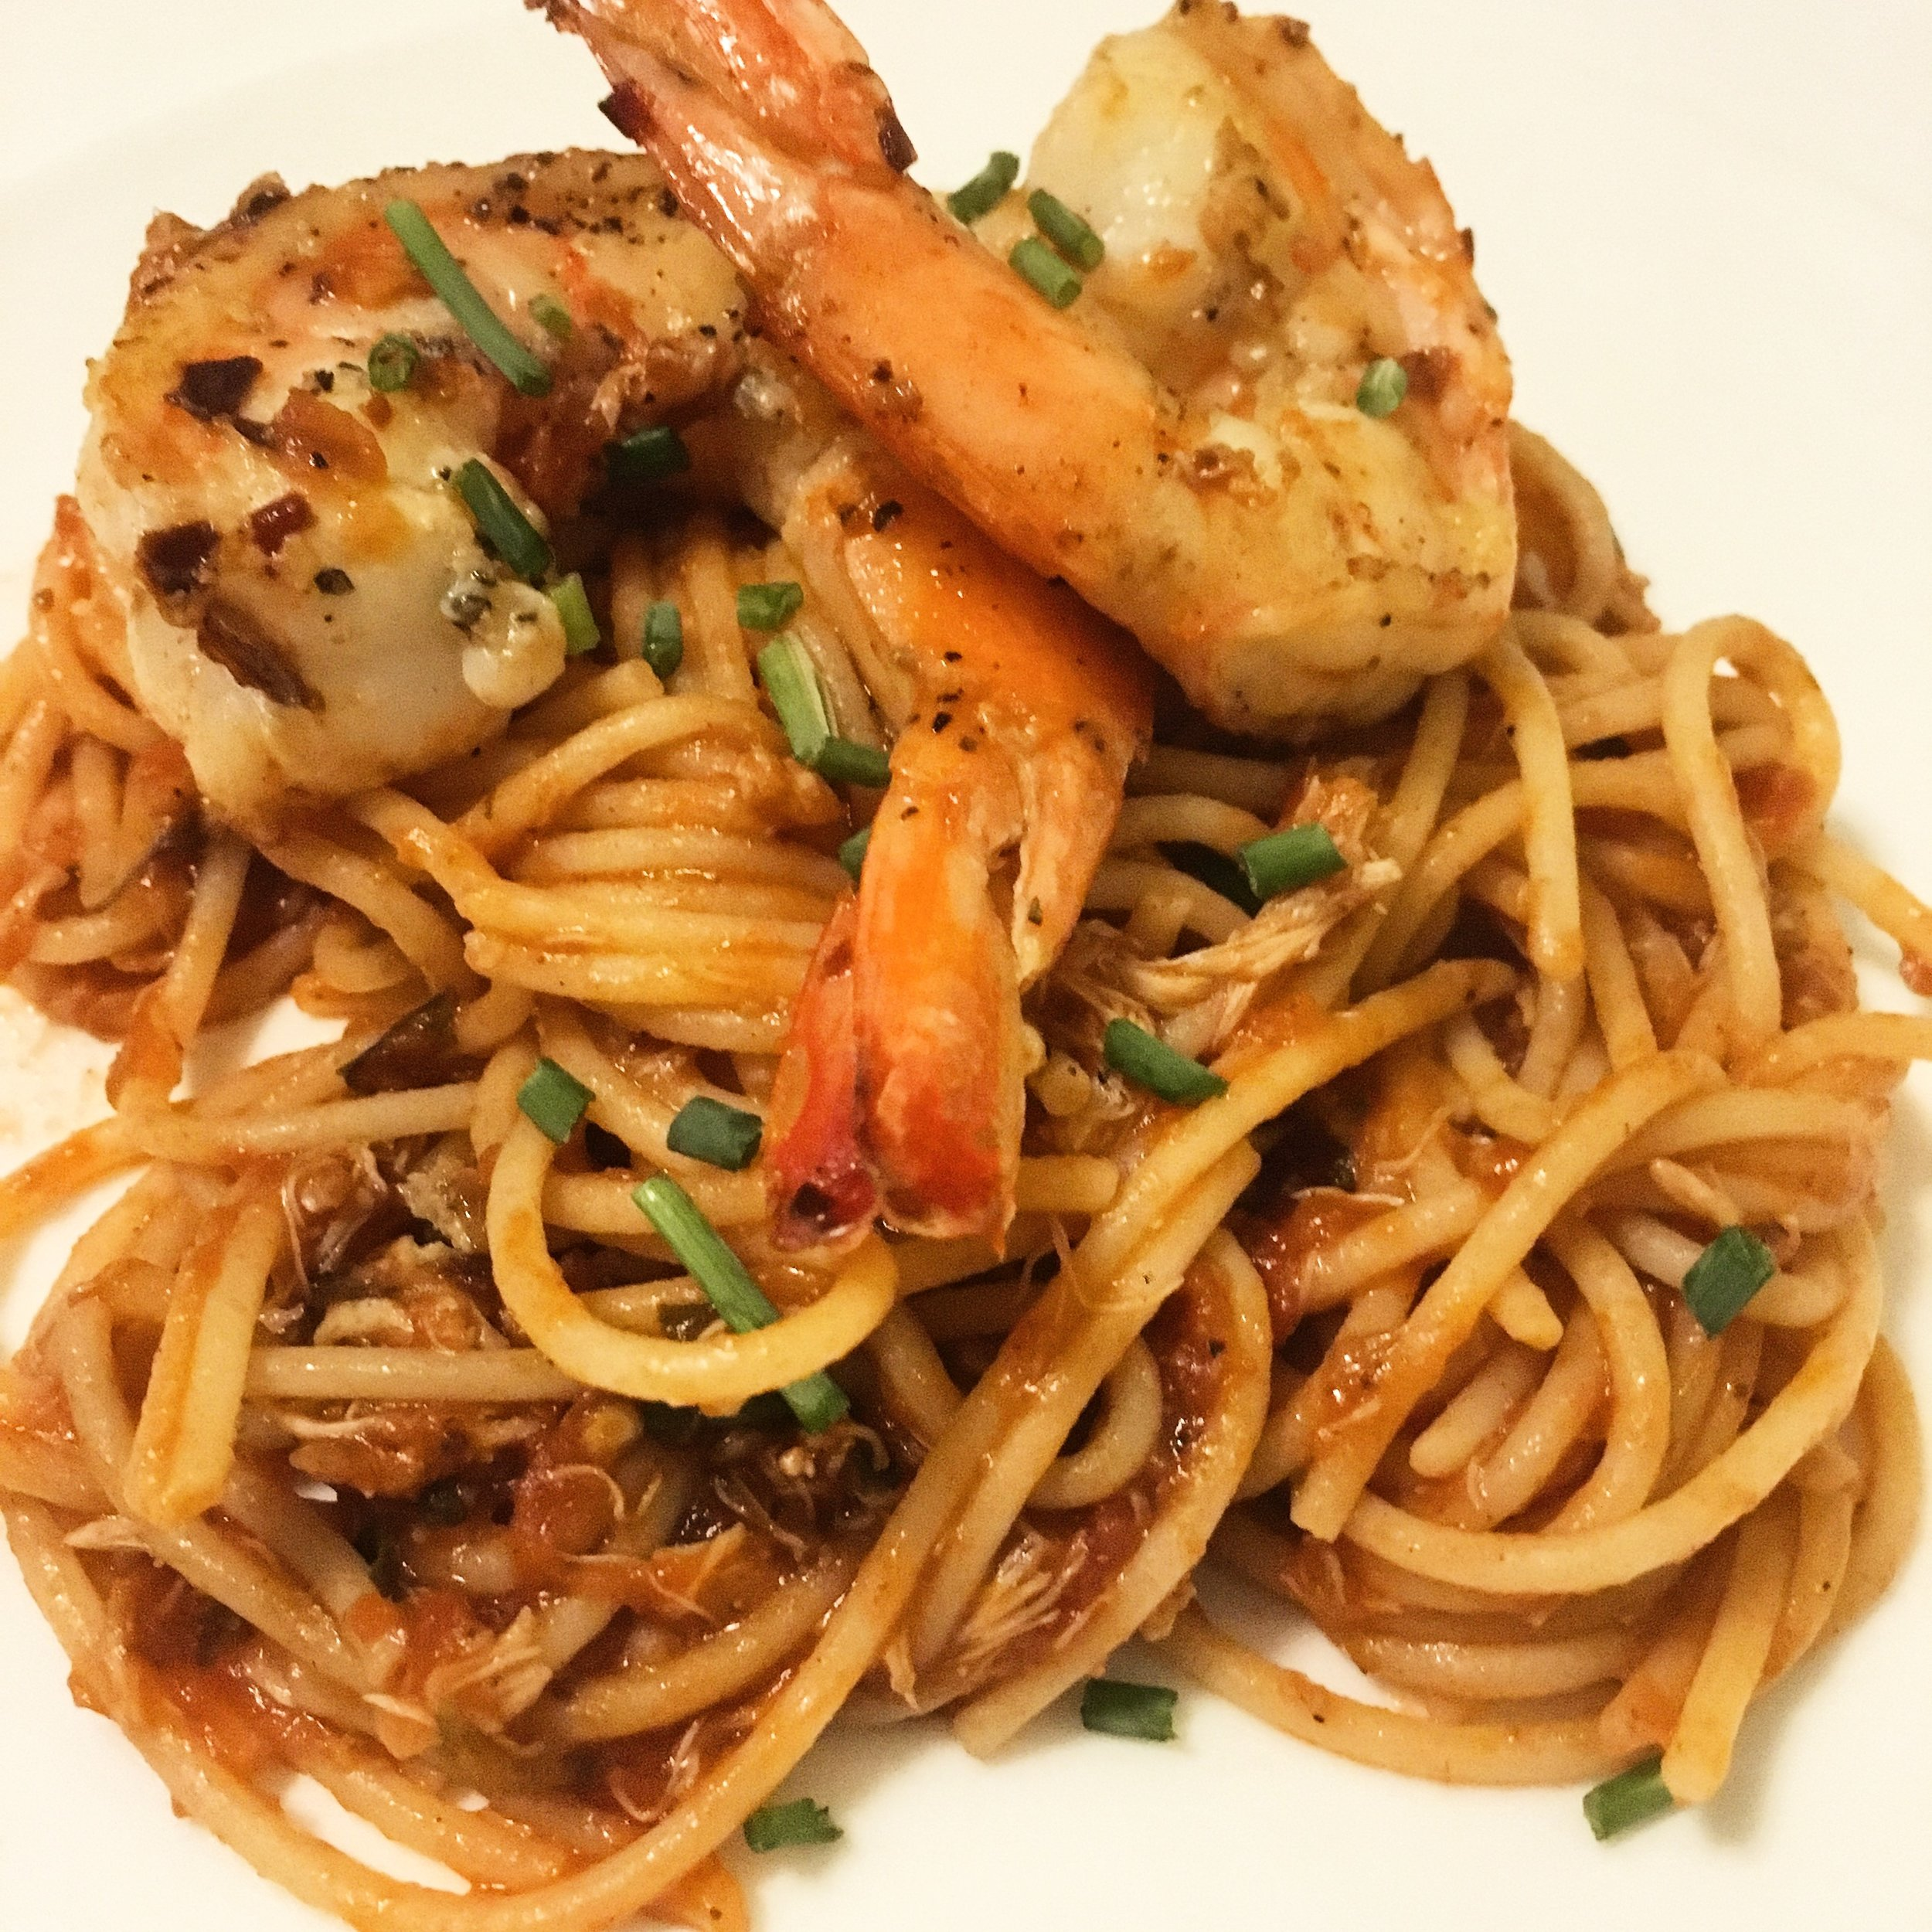 Spaghetti with Lump Crab, Gulf Shrimp, Capers and Olives